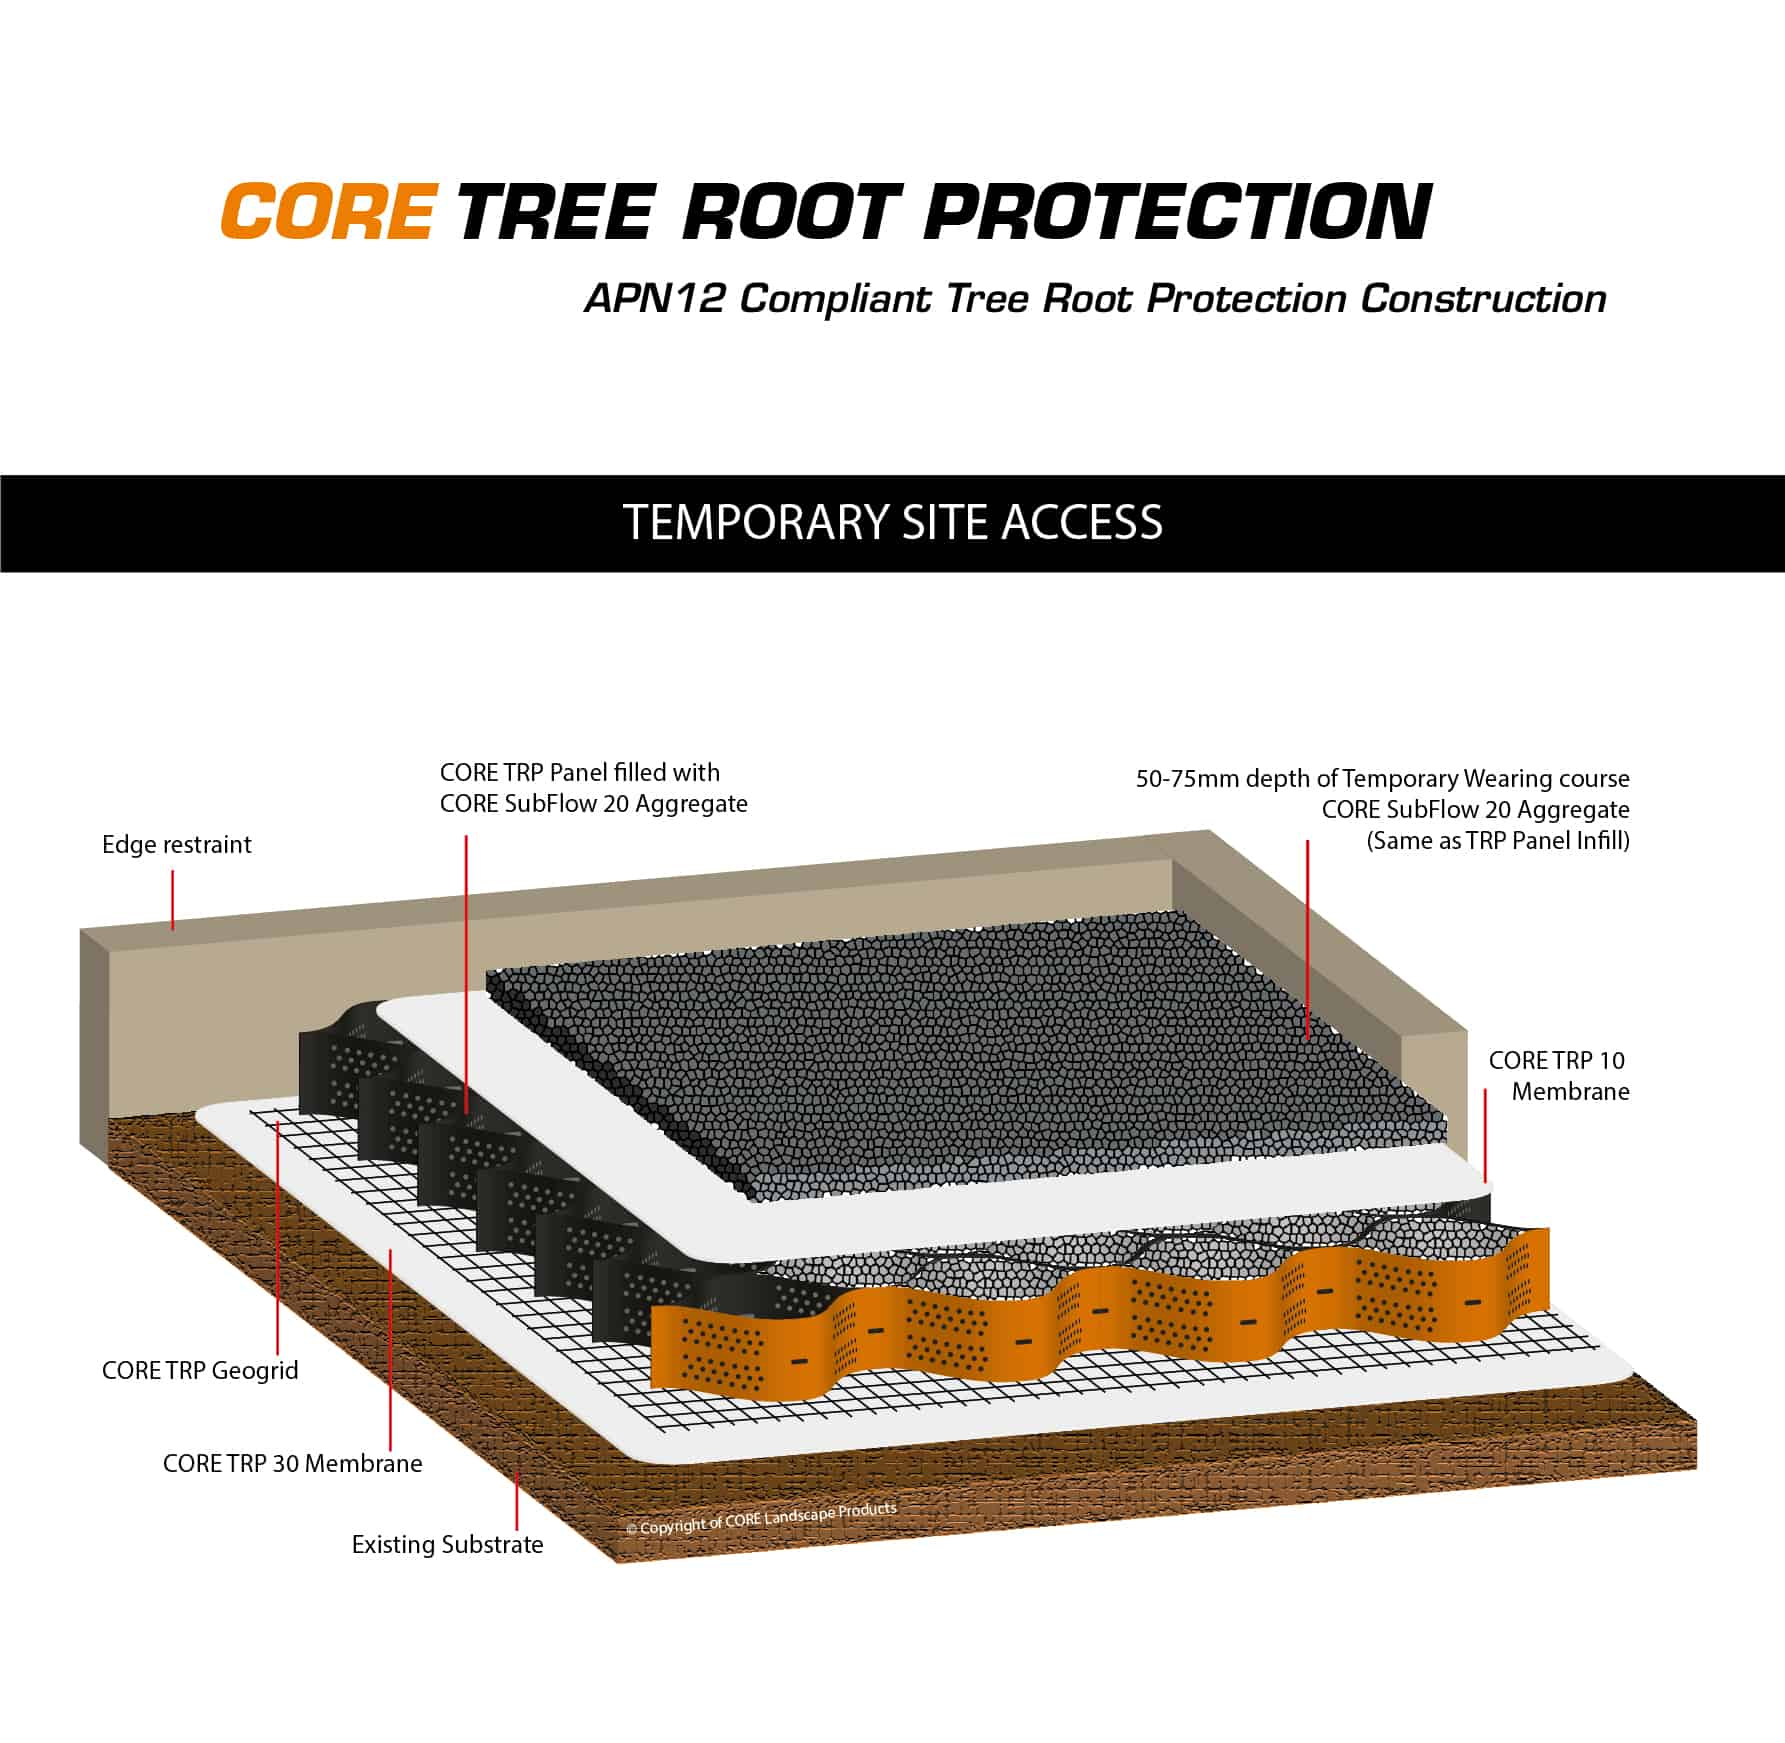 CORE TRP Used for Temporary Site Access